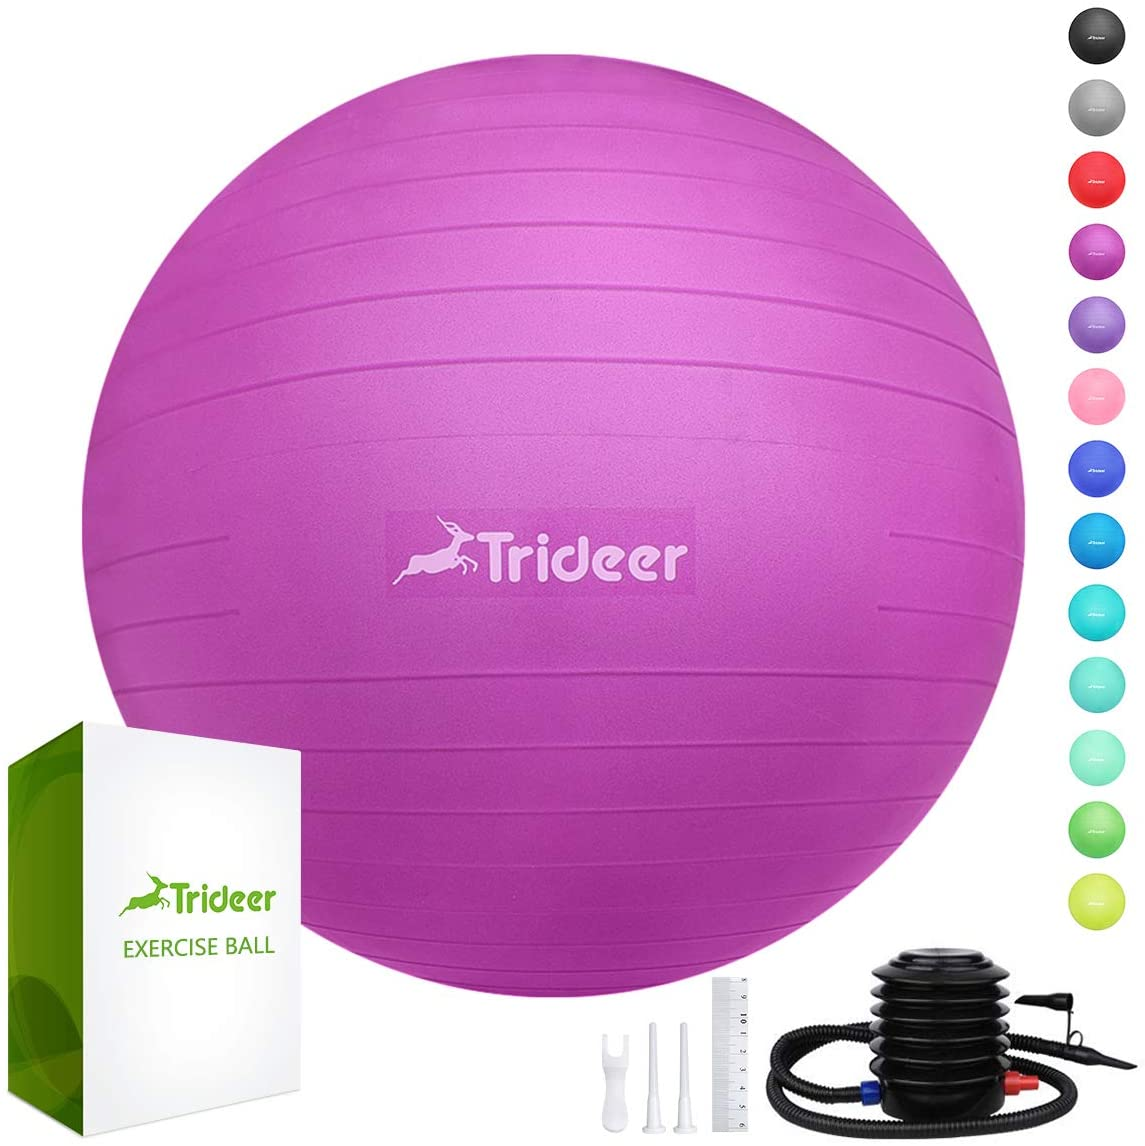 5 Best Exercise Balls In 2020 Top Rated Fitness Stability Balance Yoga Exercise Balls Reviewed Skingroom